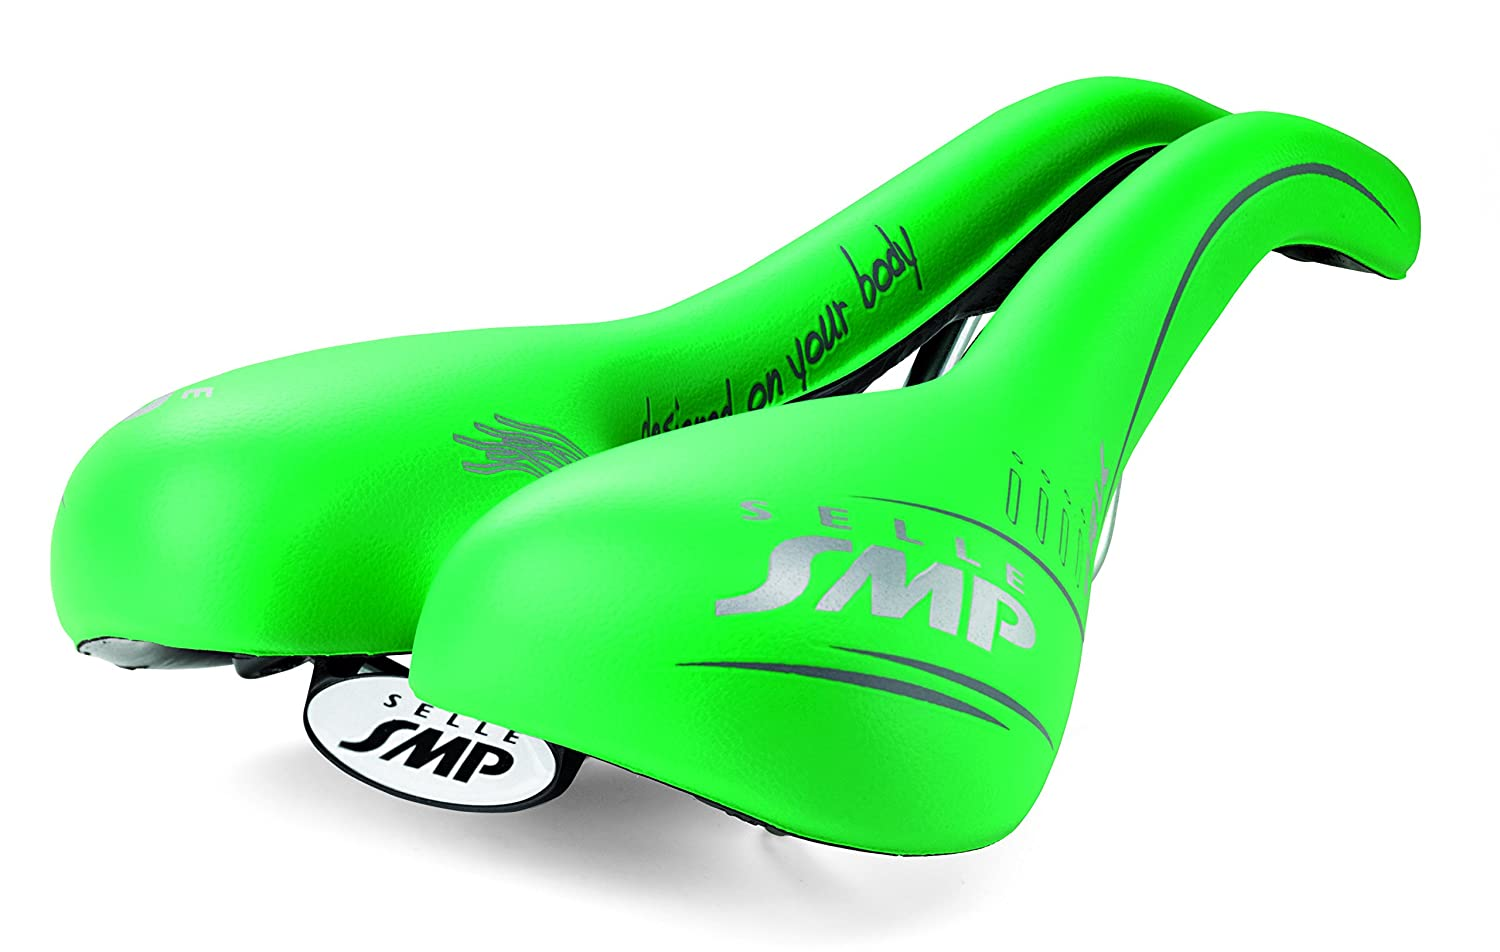 SELLE SMP(セラSMP) TRK メンズグリーン B0088VHPR4